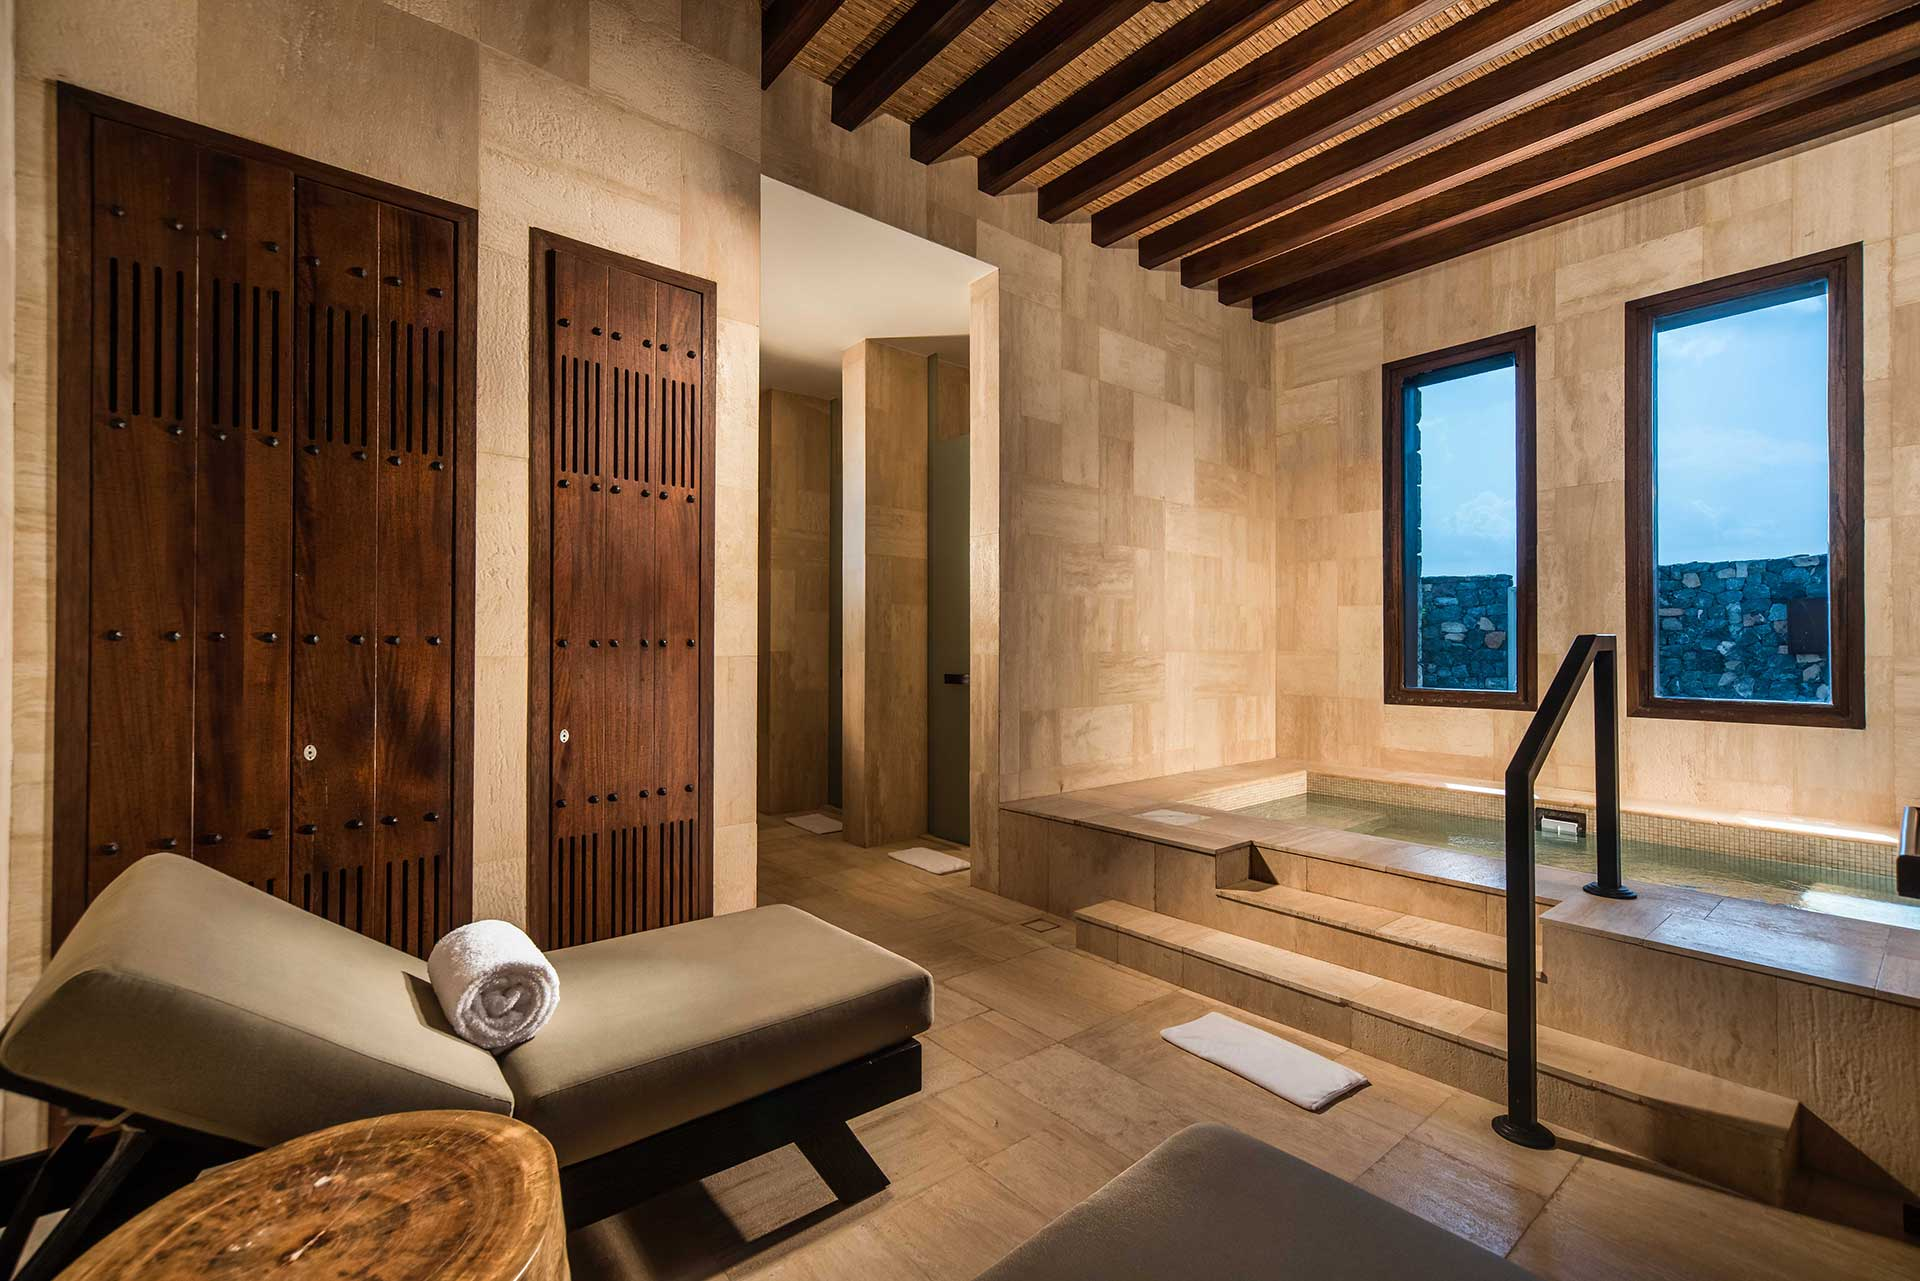 stone wall spa, chair and jacuzzi